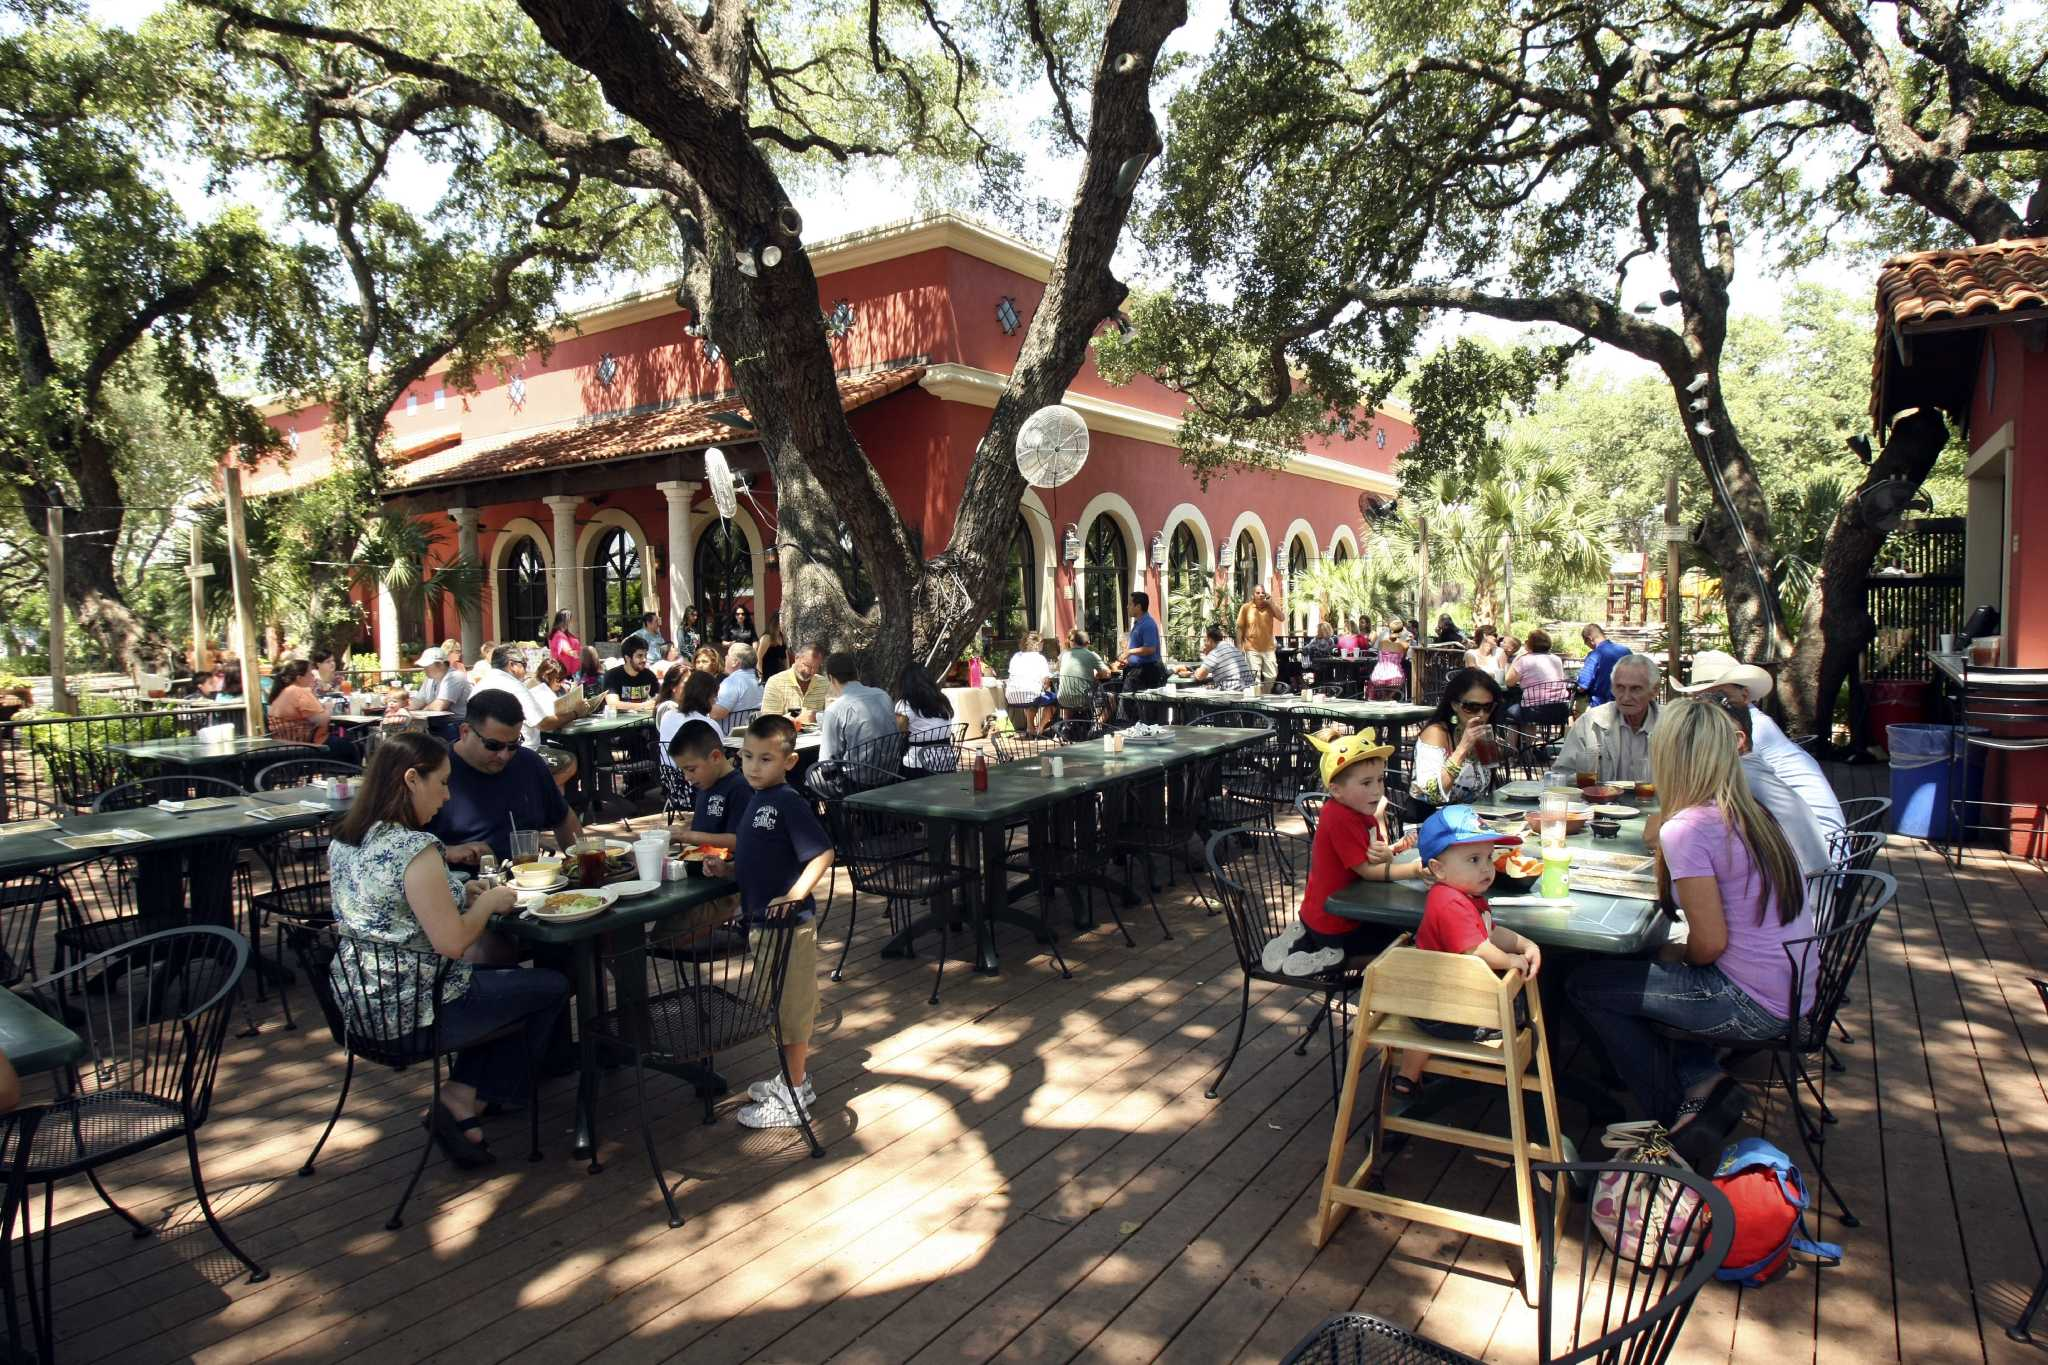 Bobby Flay Outdoor Kitchen Readers Choice Best Outdoor Dining San Antonio Express News